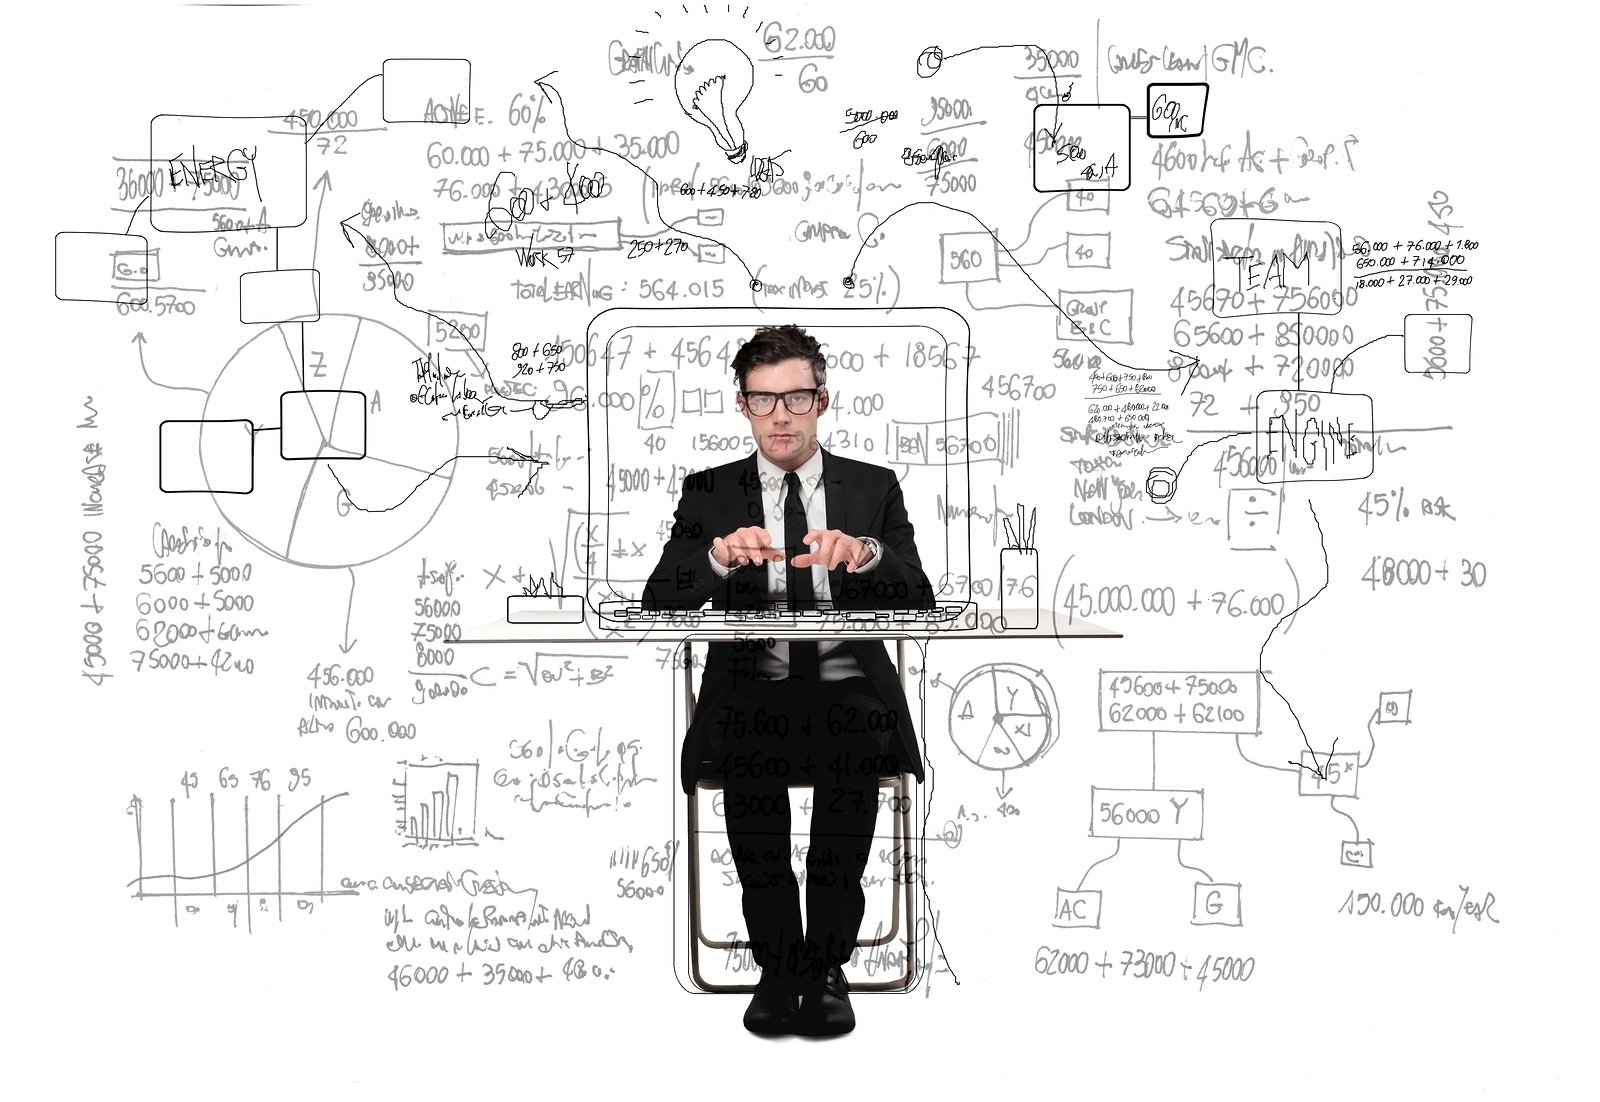 10 Awesome How To Patent A Website Idea how to patent a website idea intellectual pats 7